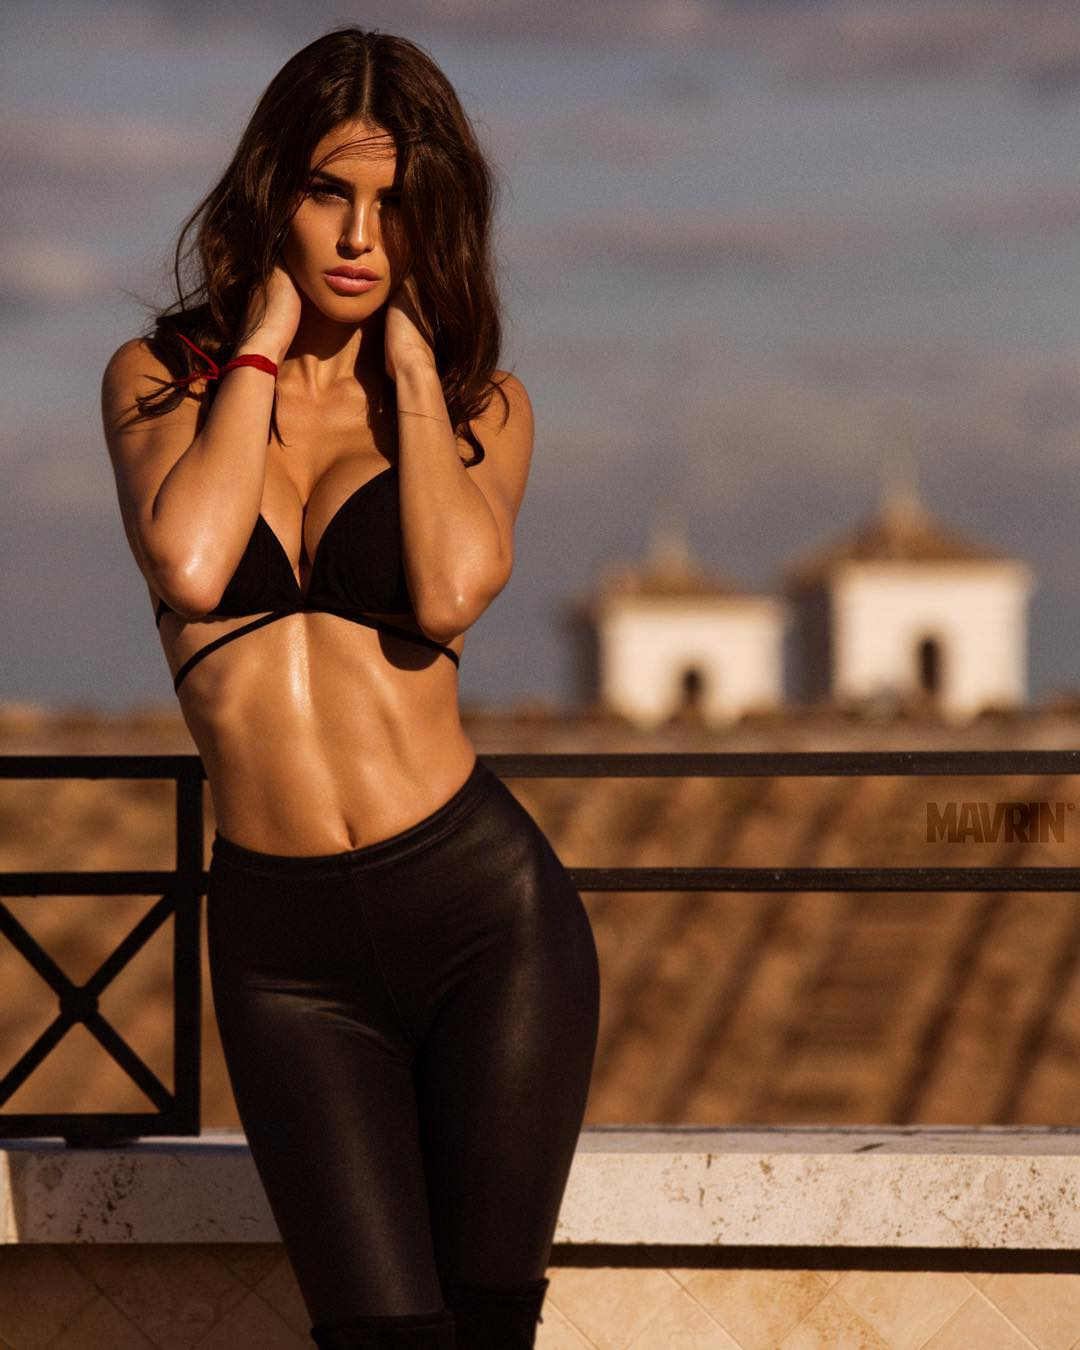 Pictures Silvia Caruso naked (27 photo), Topless, Leaked, Instagram, in bikini 2020